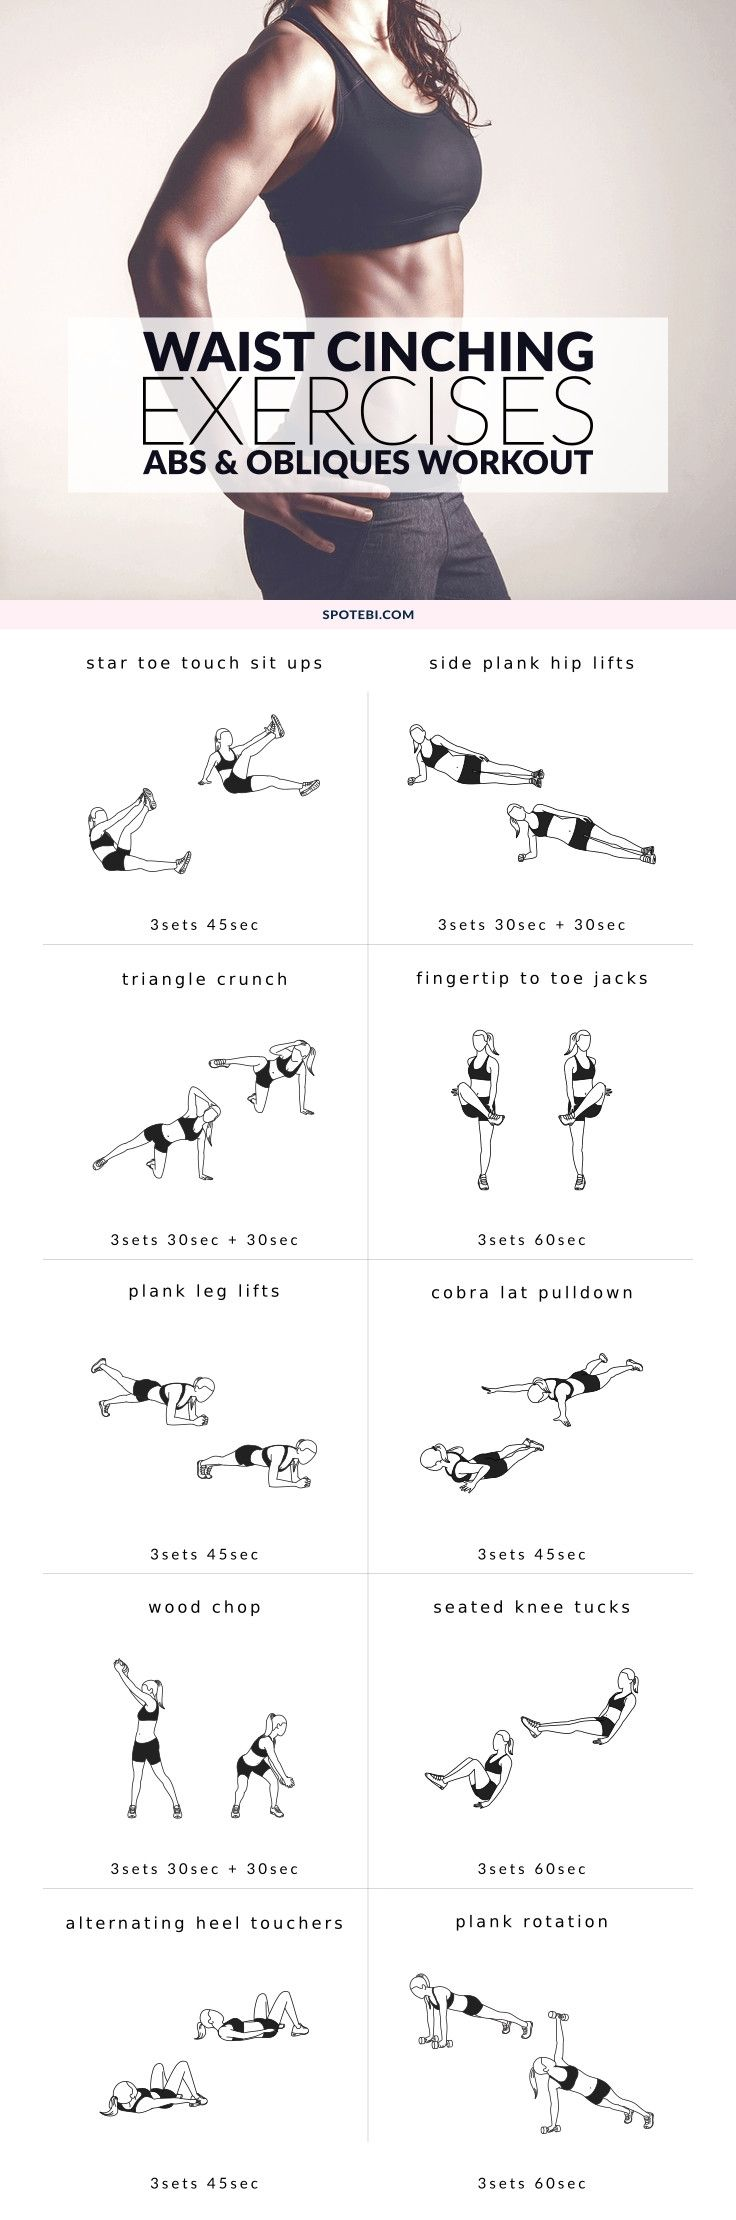 Work your abs and obliques with these core exercises for women. A 30-minute waist cinching workout that will activate your obliques and define the waistline. Start the timer and enjoy your workout! https://www.spotebi.com/workout-routines/core-exercises-for-women-abs-obliques-workout/ #totalbodytransformation